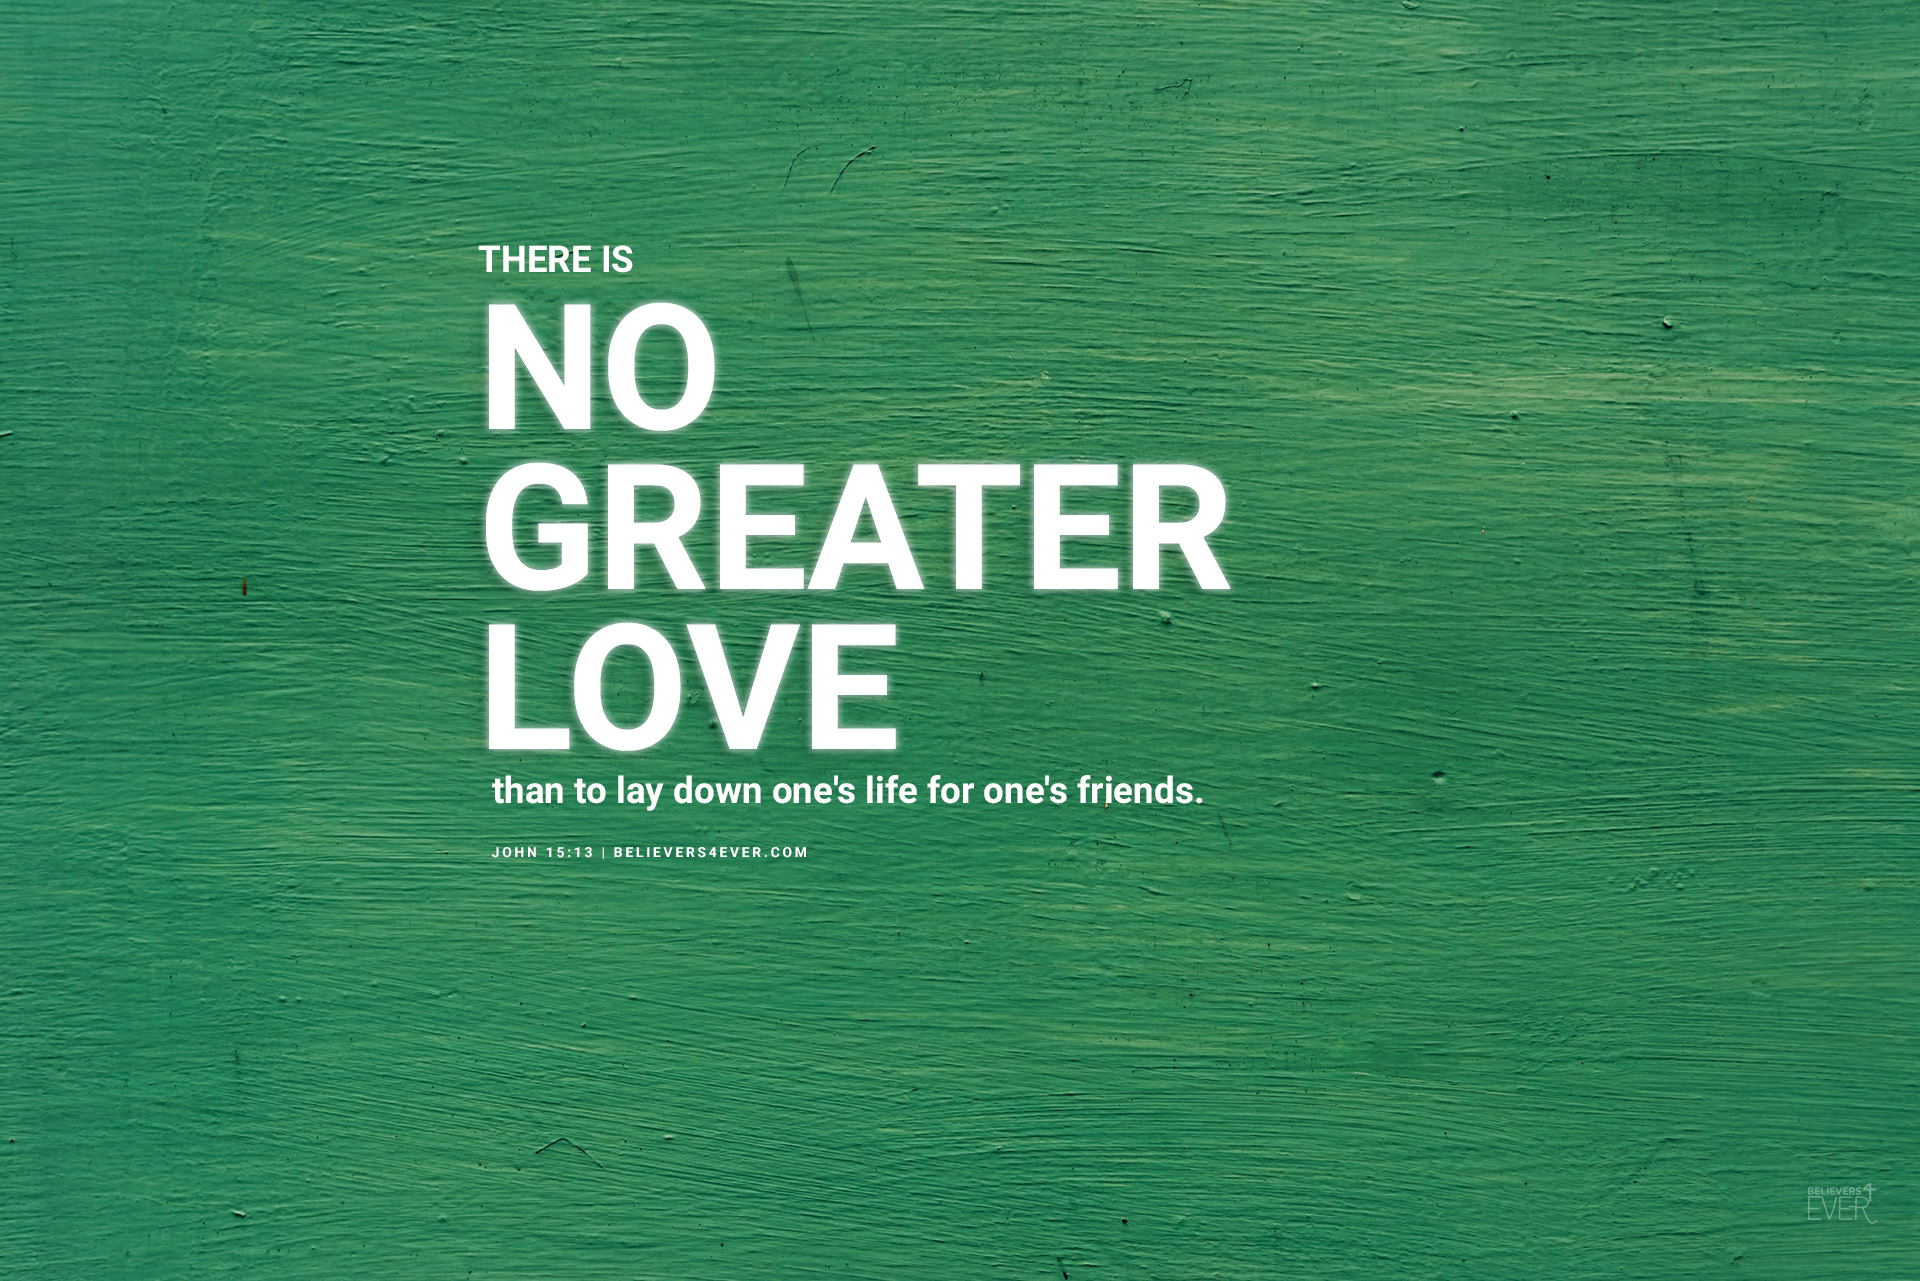 no greater love - believers4ever